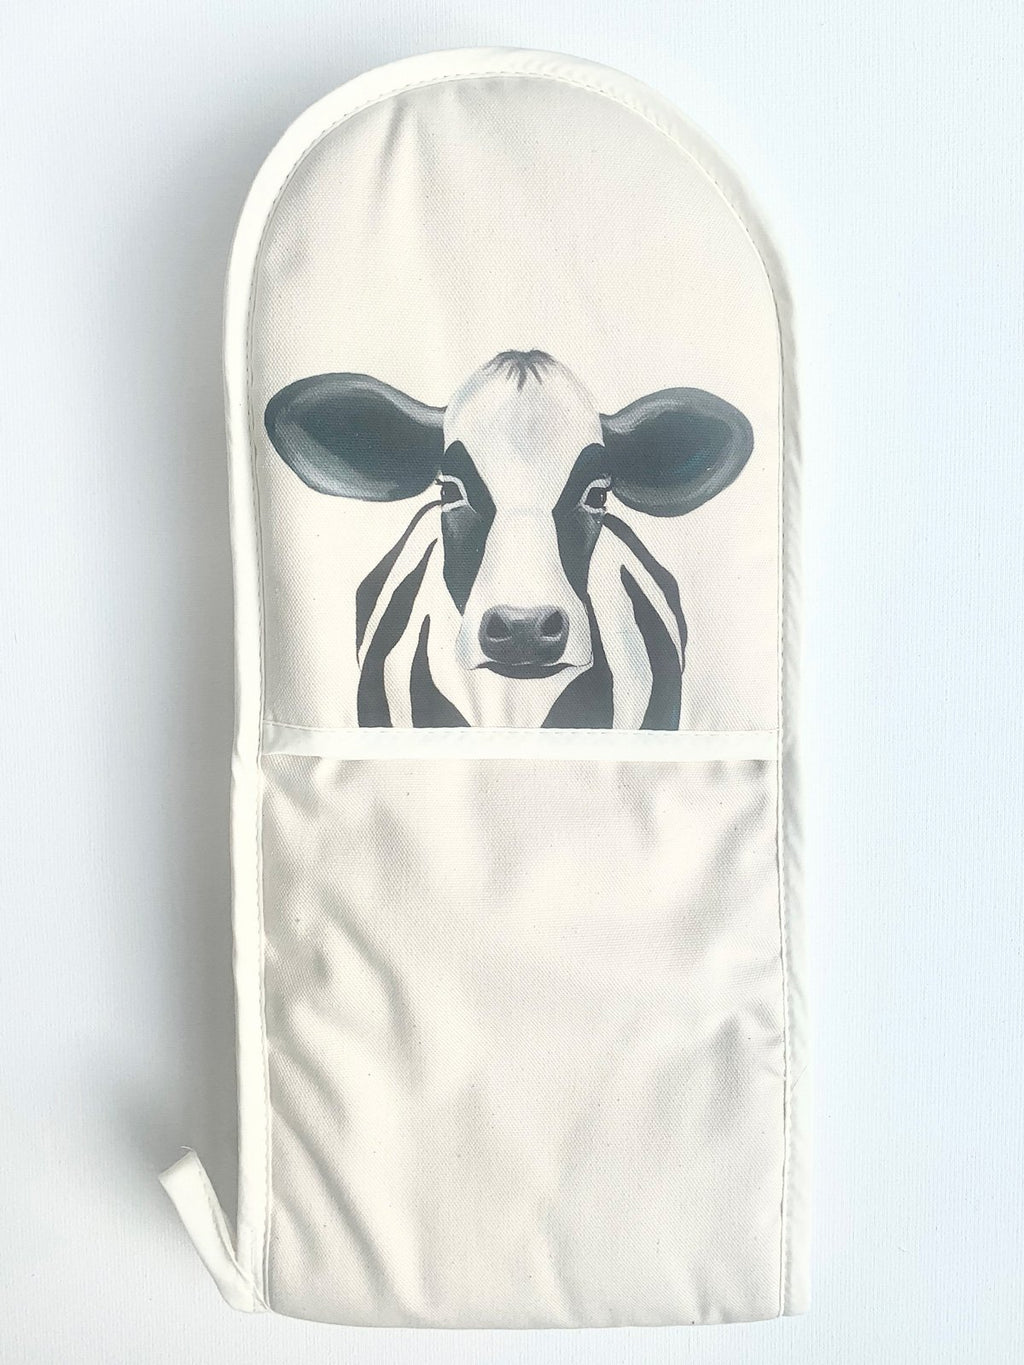 Camilla the Cow oven mitt